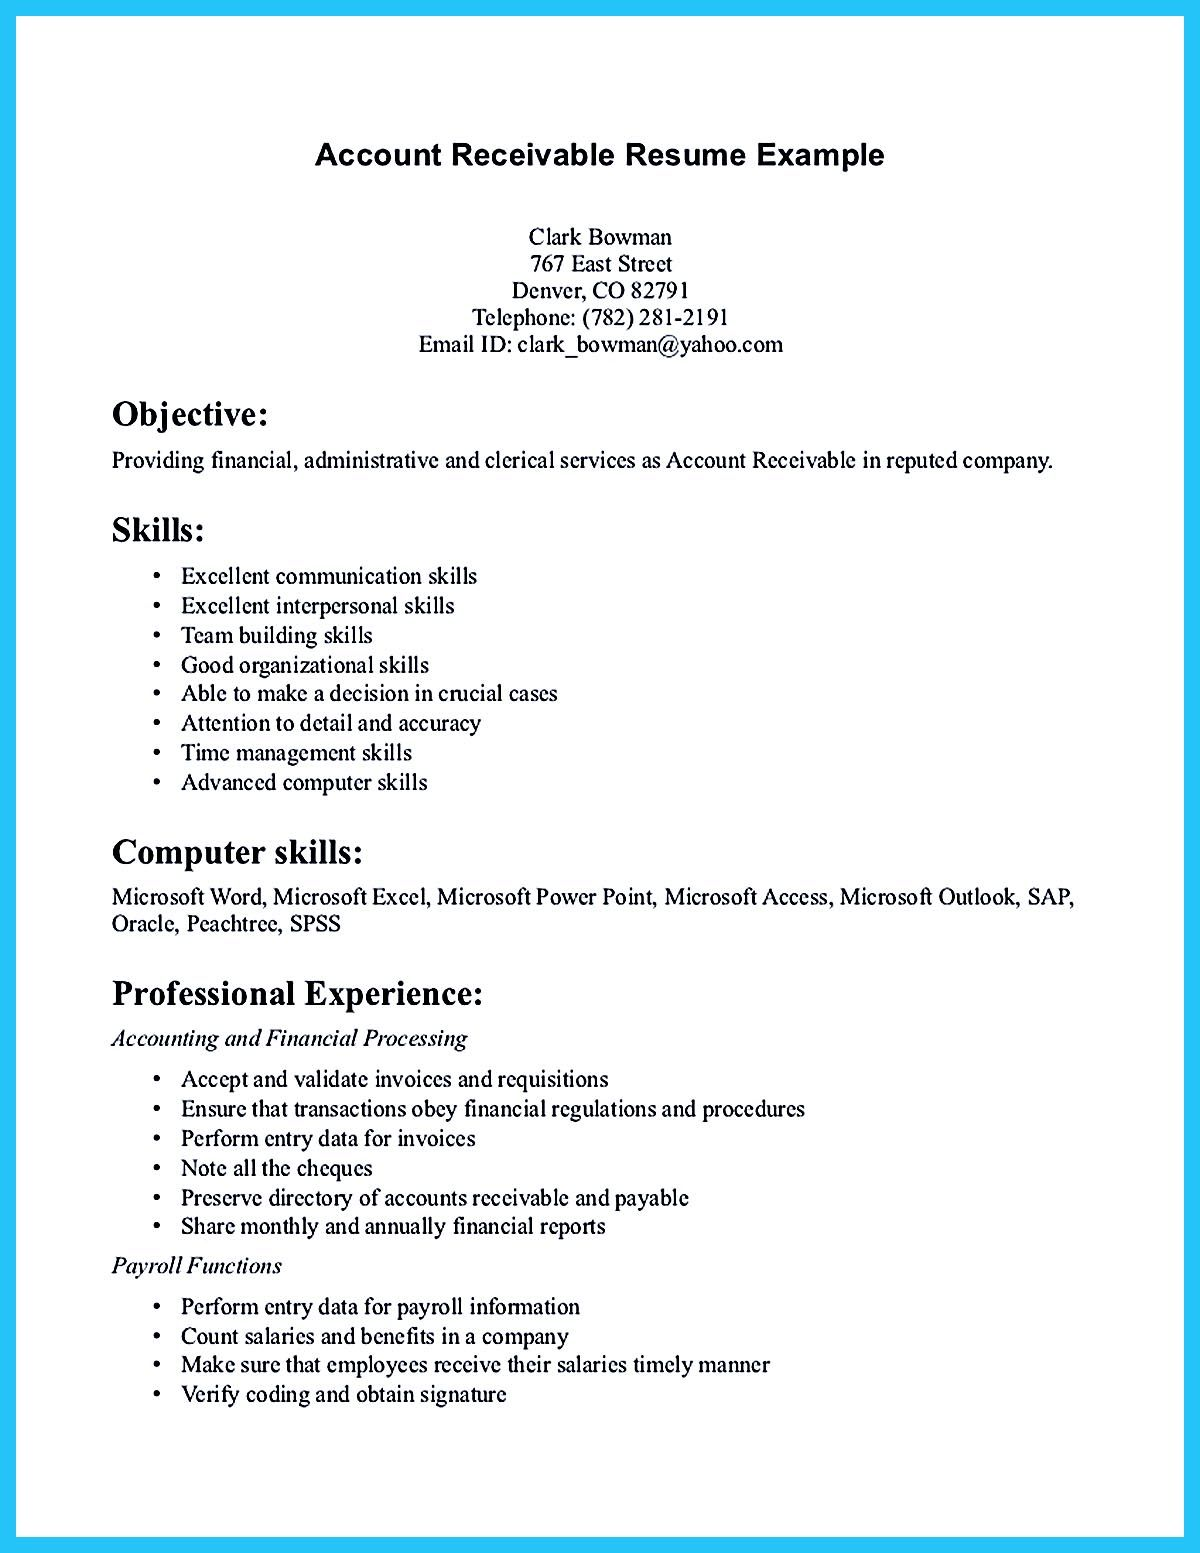 resume objectives examples for accounts receivable